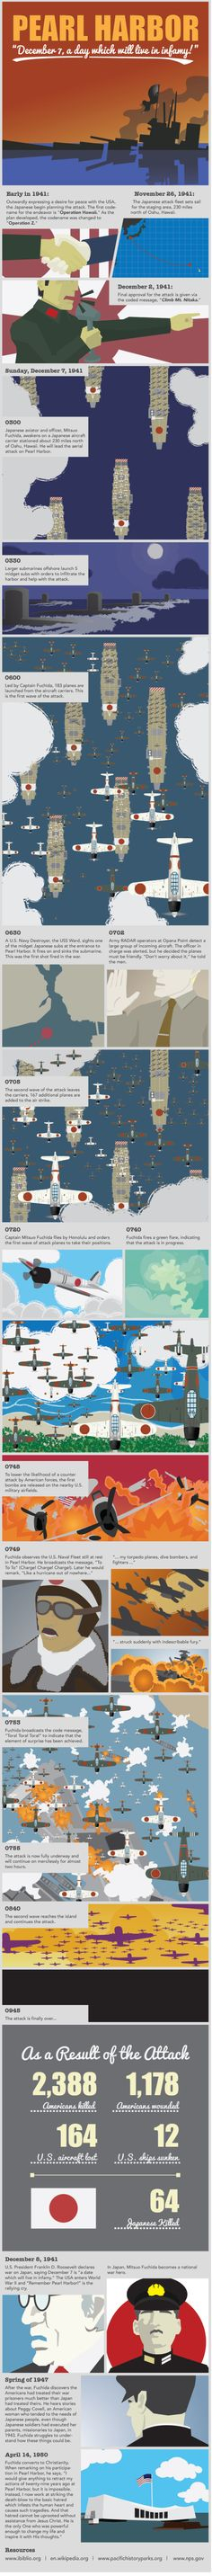 Pearl Harbor[INFOGRAPHIC]